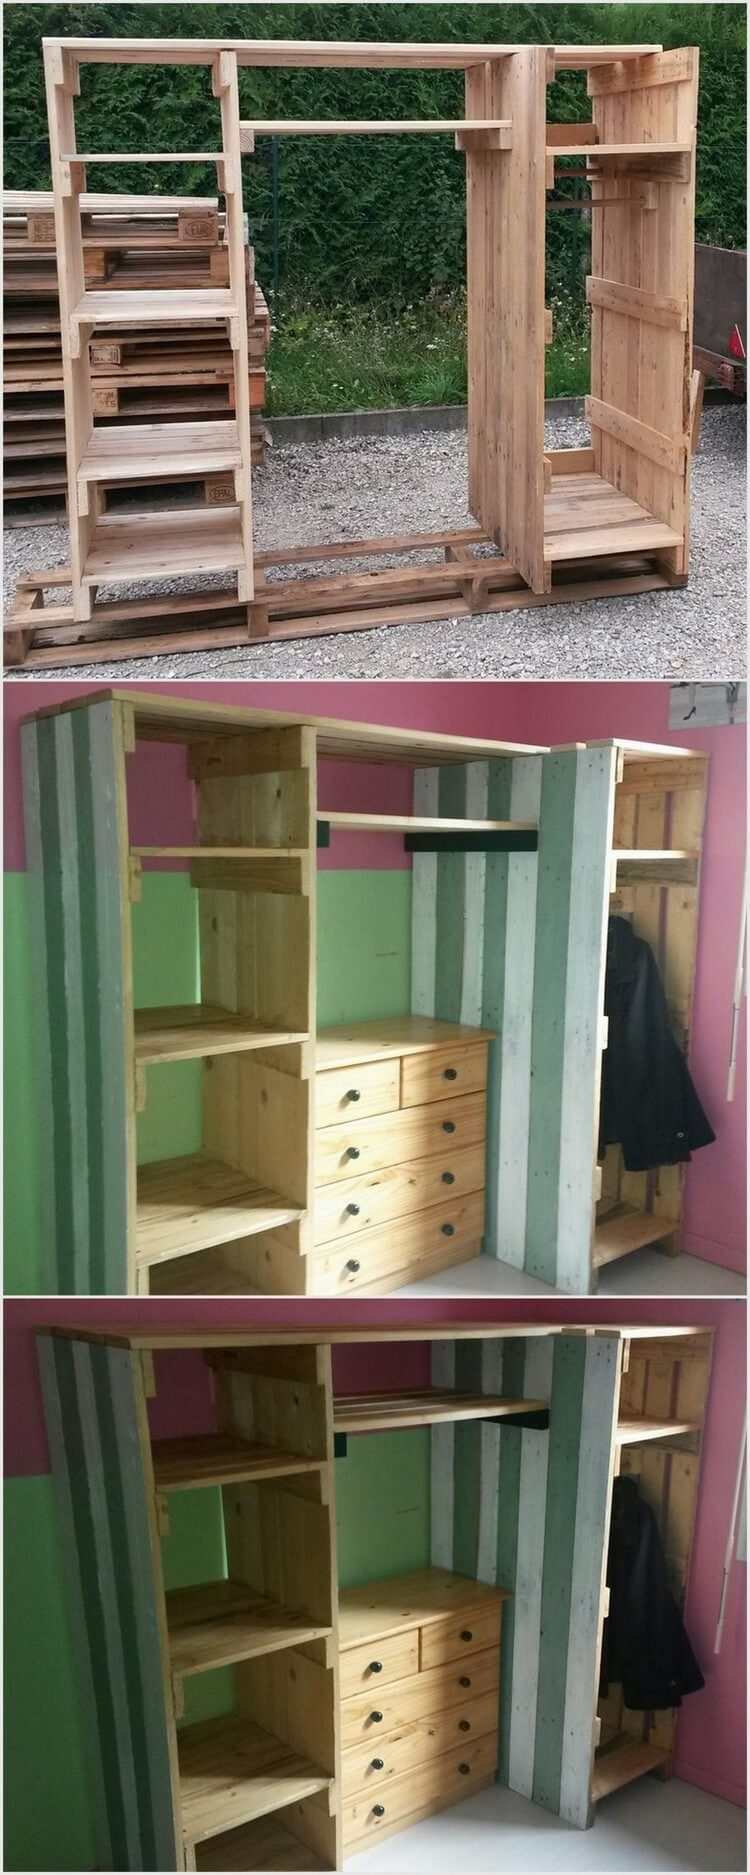 top best recycling ideas with used wood pallets pallet wood projects. Black Bedroom Furniture Sets. Home Design Ideas